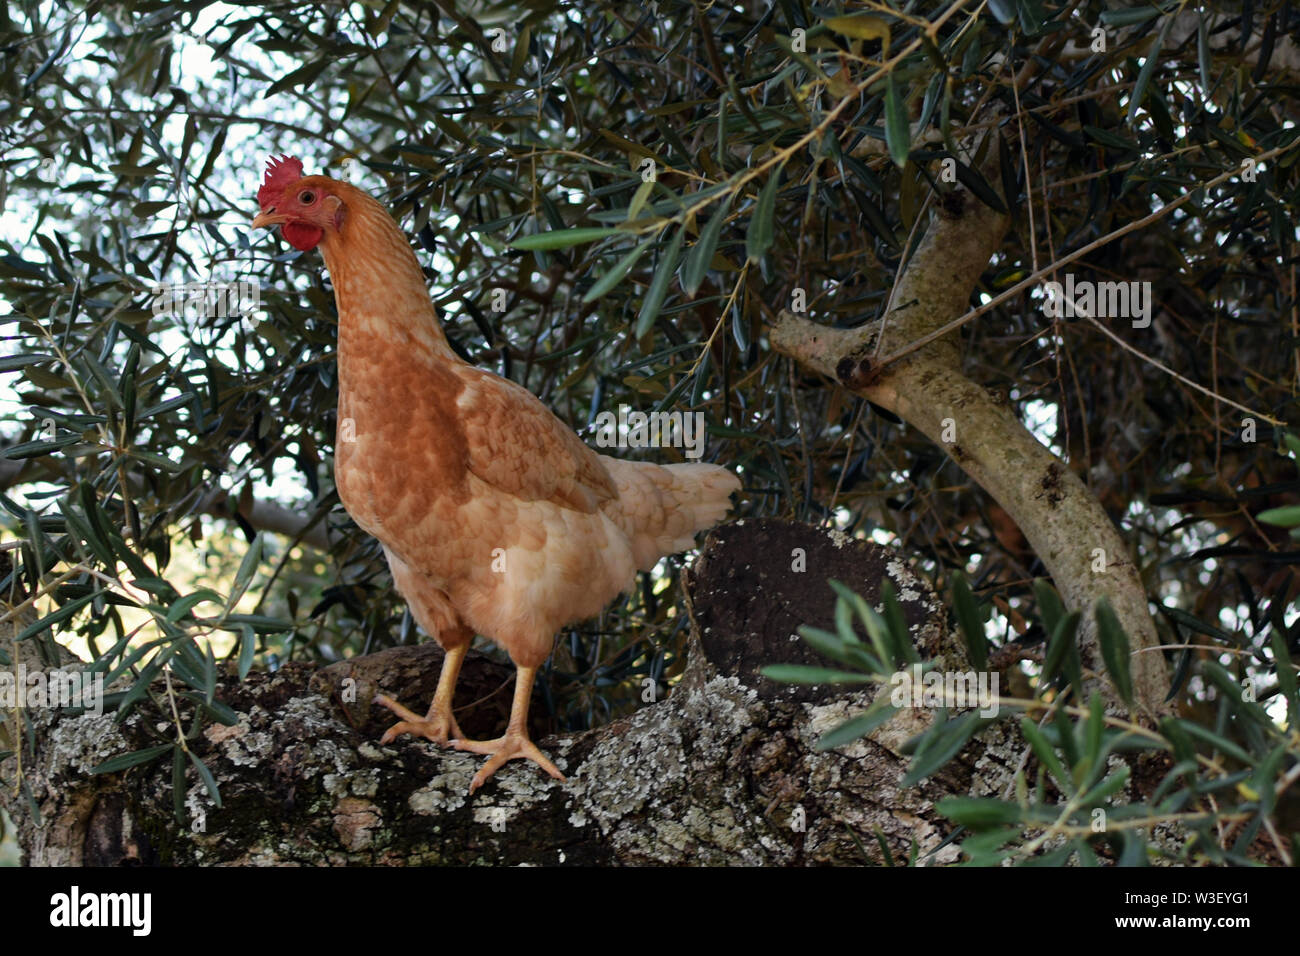 Free range chicken on olive tree branches. - Stock Image